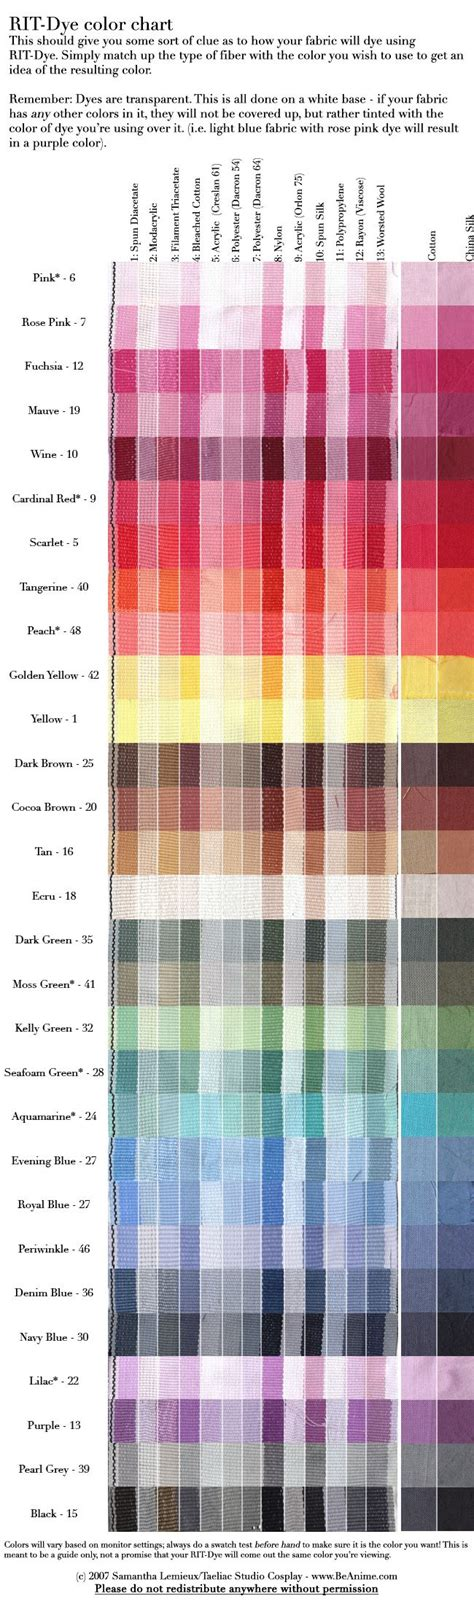 color dye for clothes rit dye color chart lists the different rit colors and